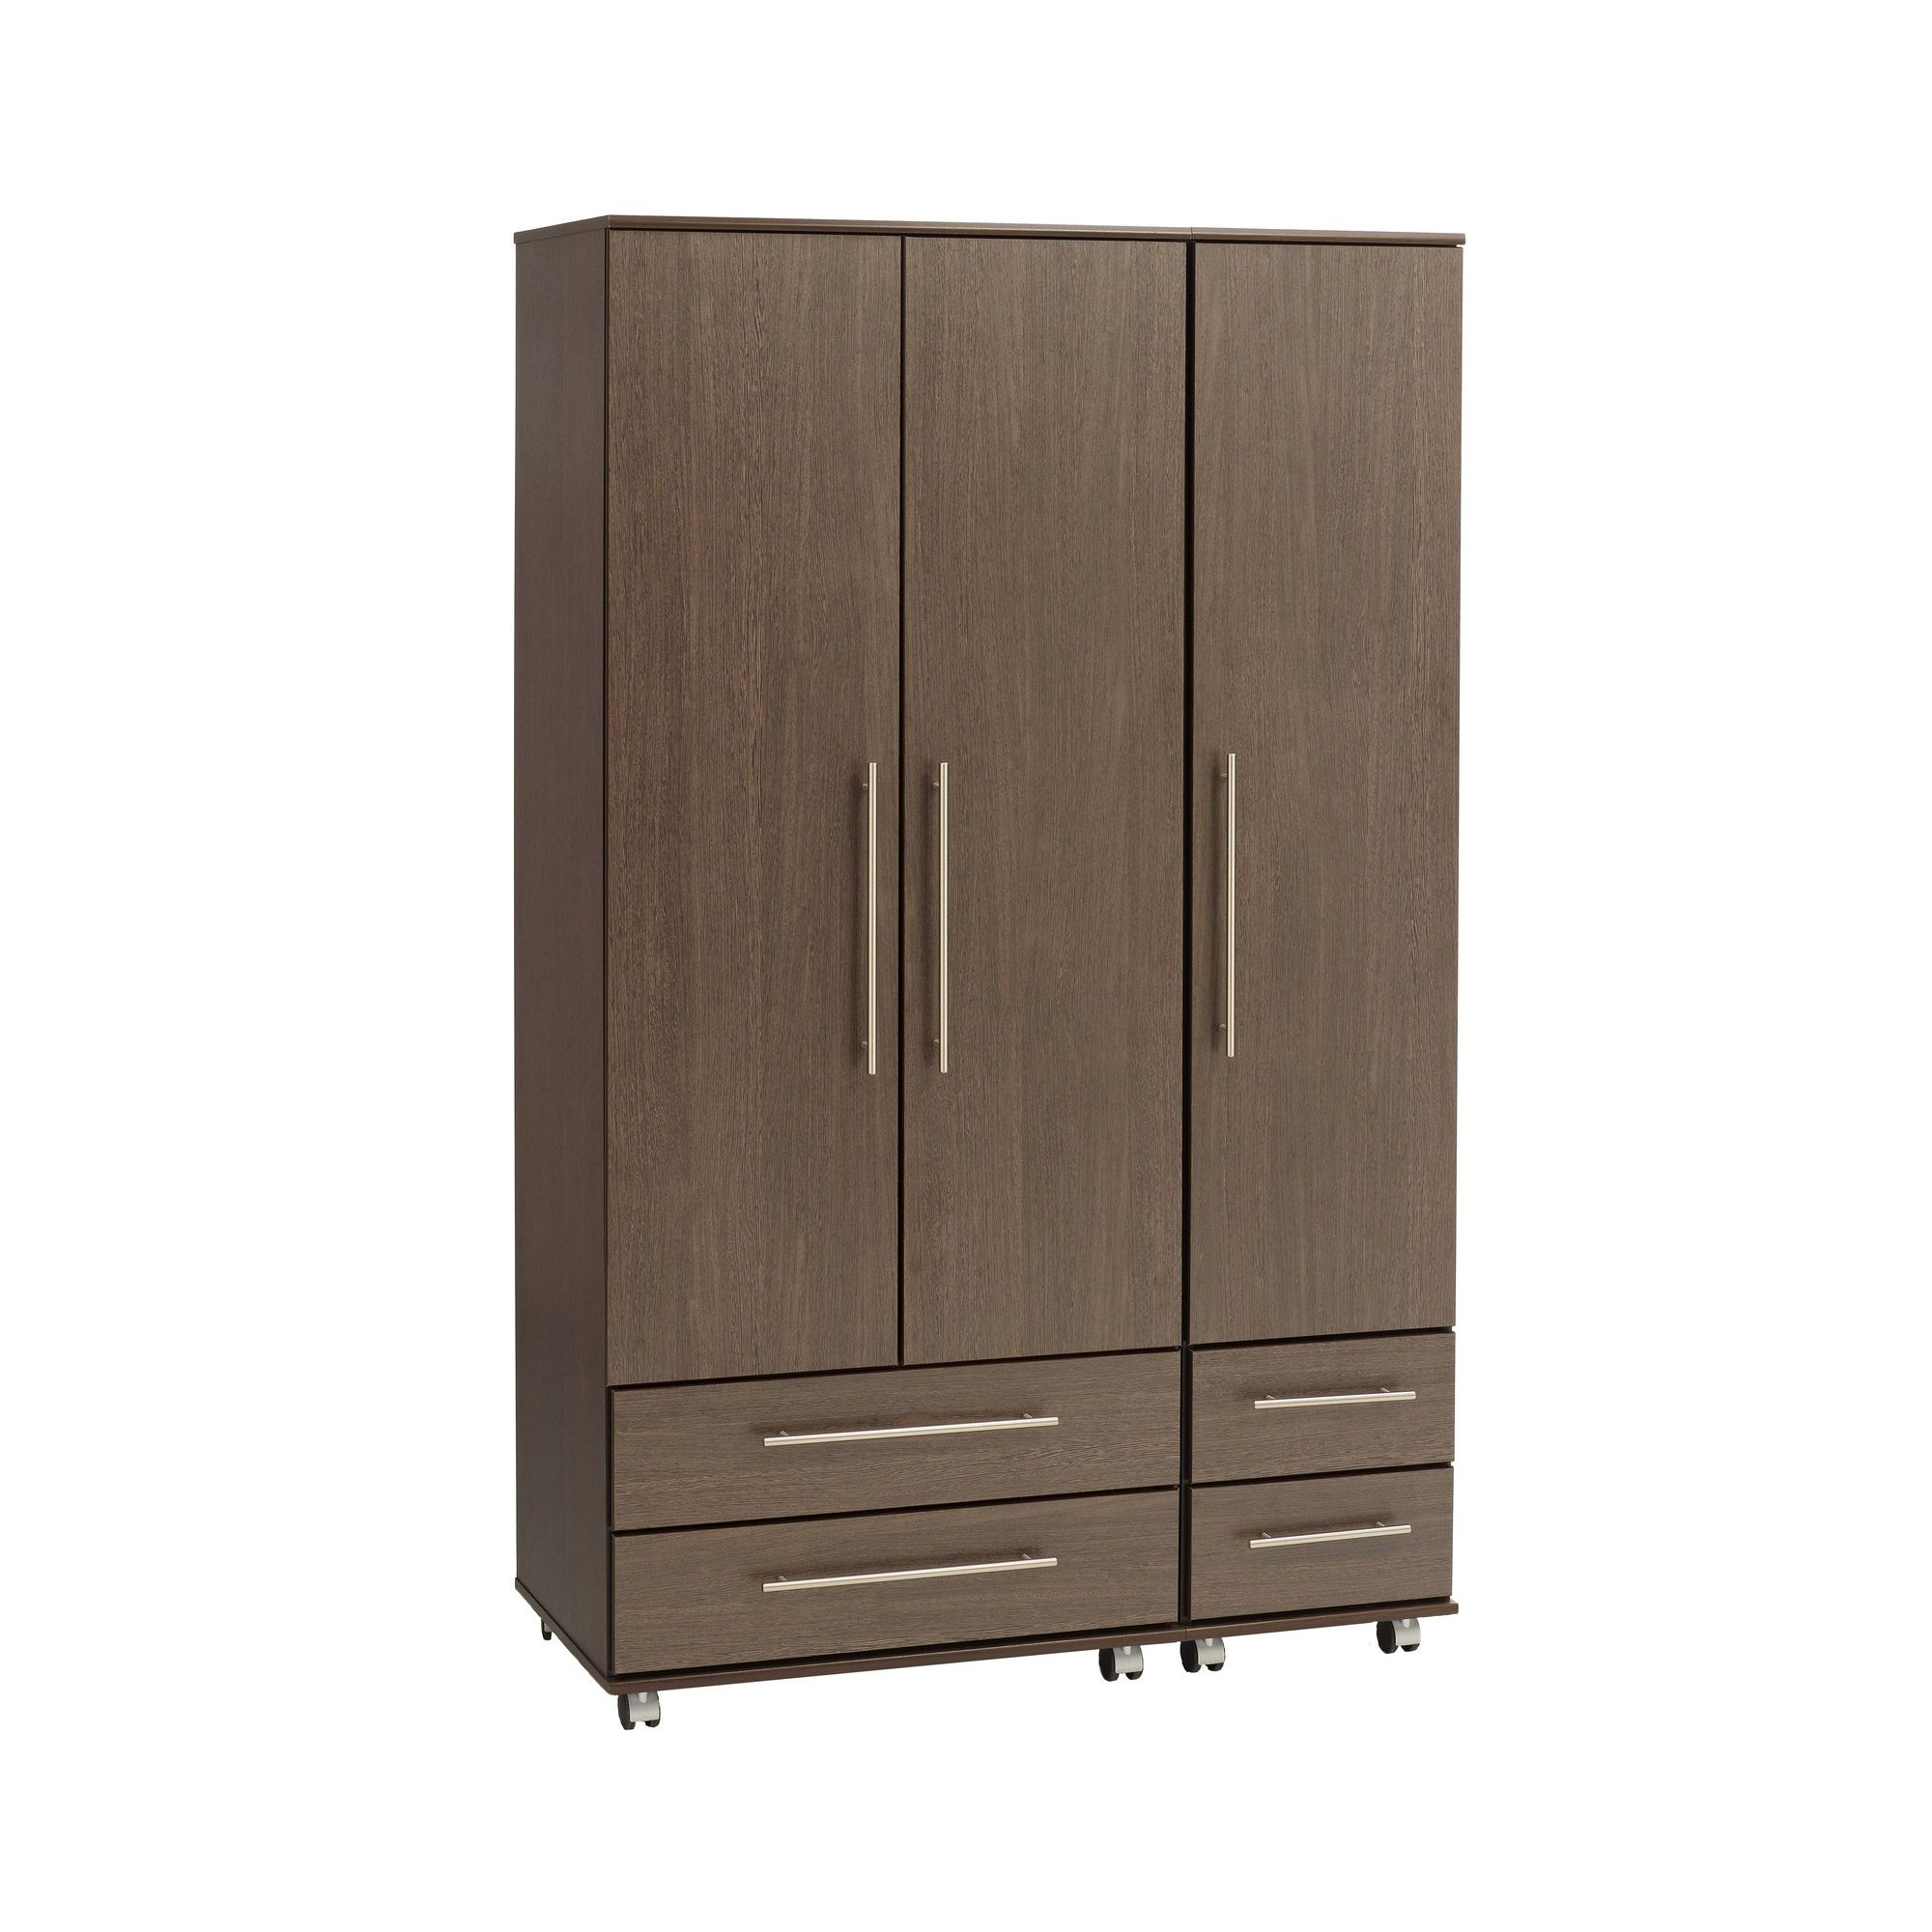 Ideal Furniture New York Triple Wardrobe with Four Drawers - Wenge at Tesco Direct